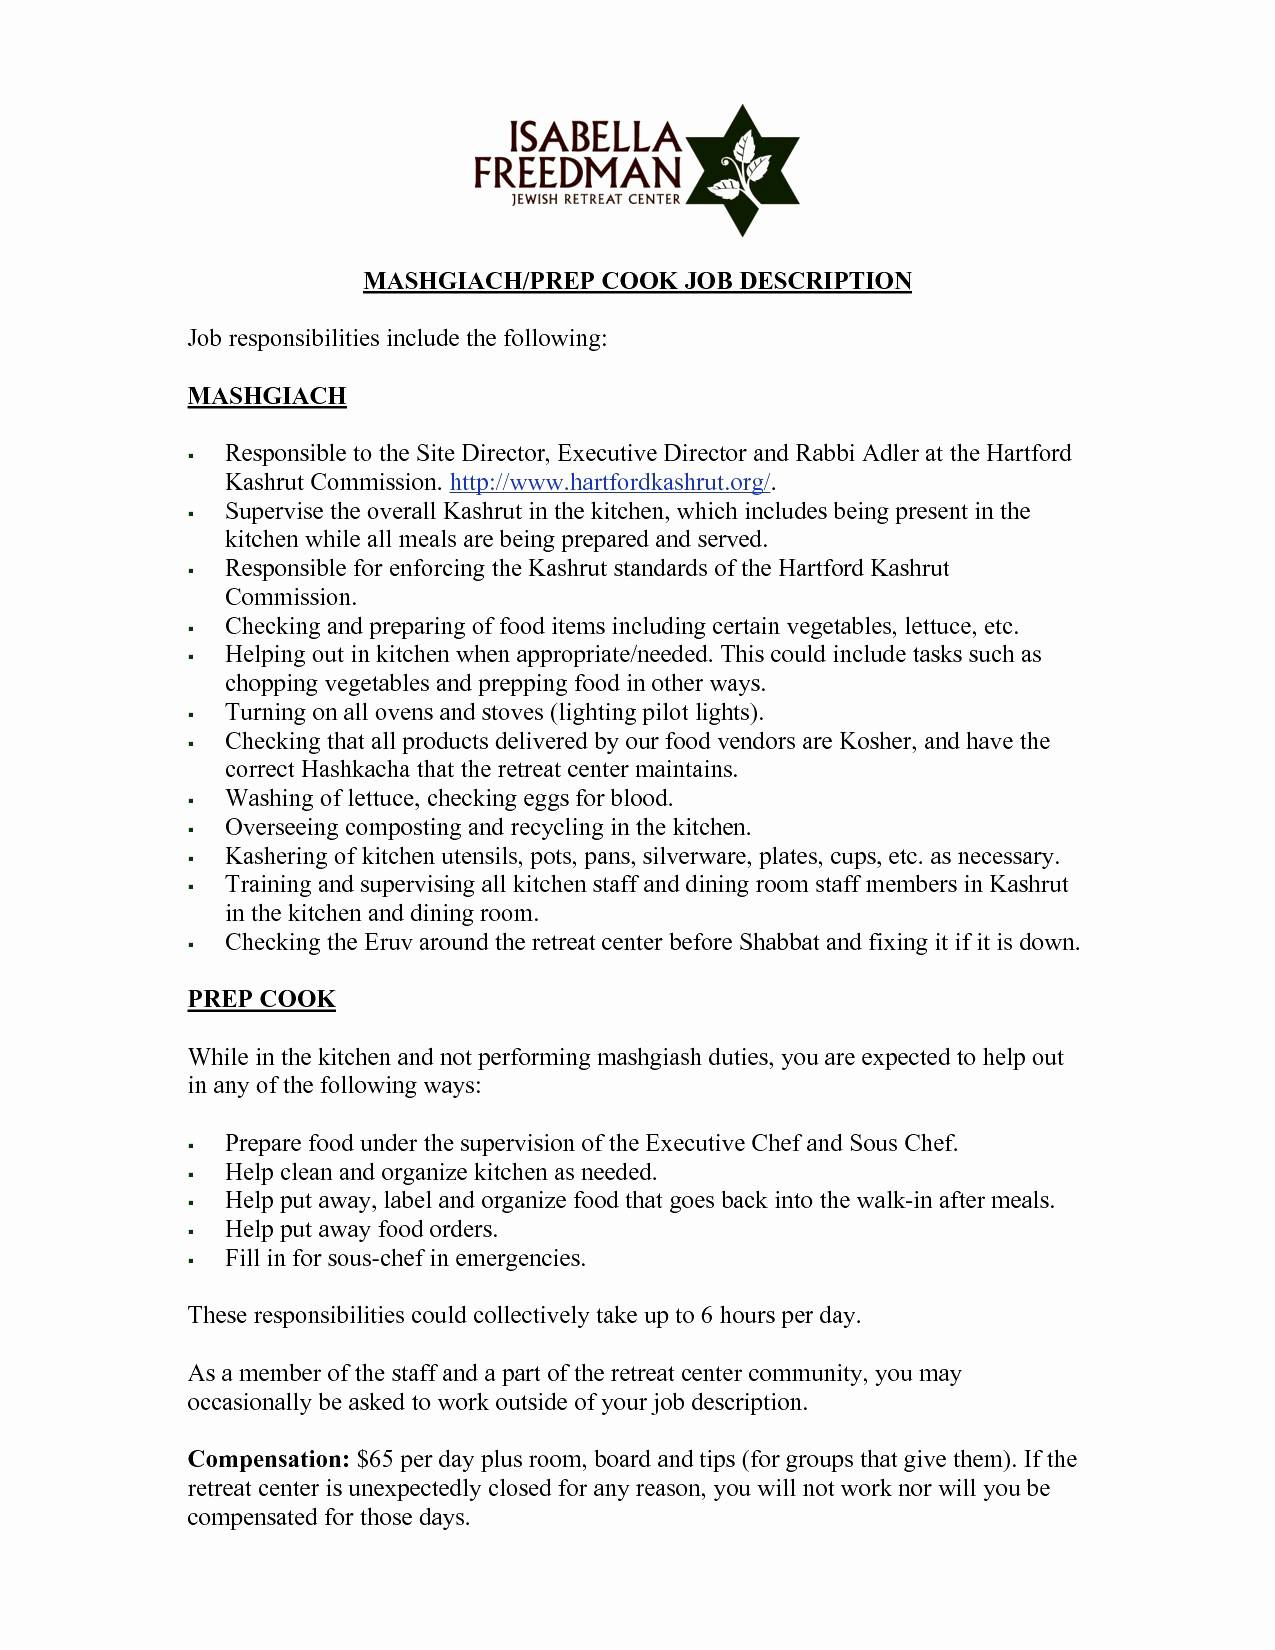 Marketing Cover Letter Template - Help with Writing A Cover Letter Fresh Marketing Director Cover